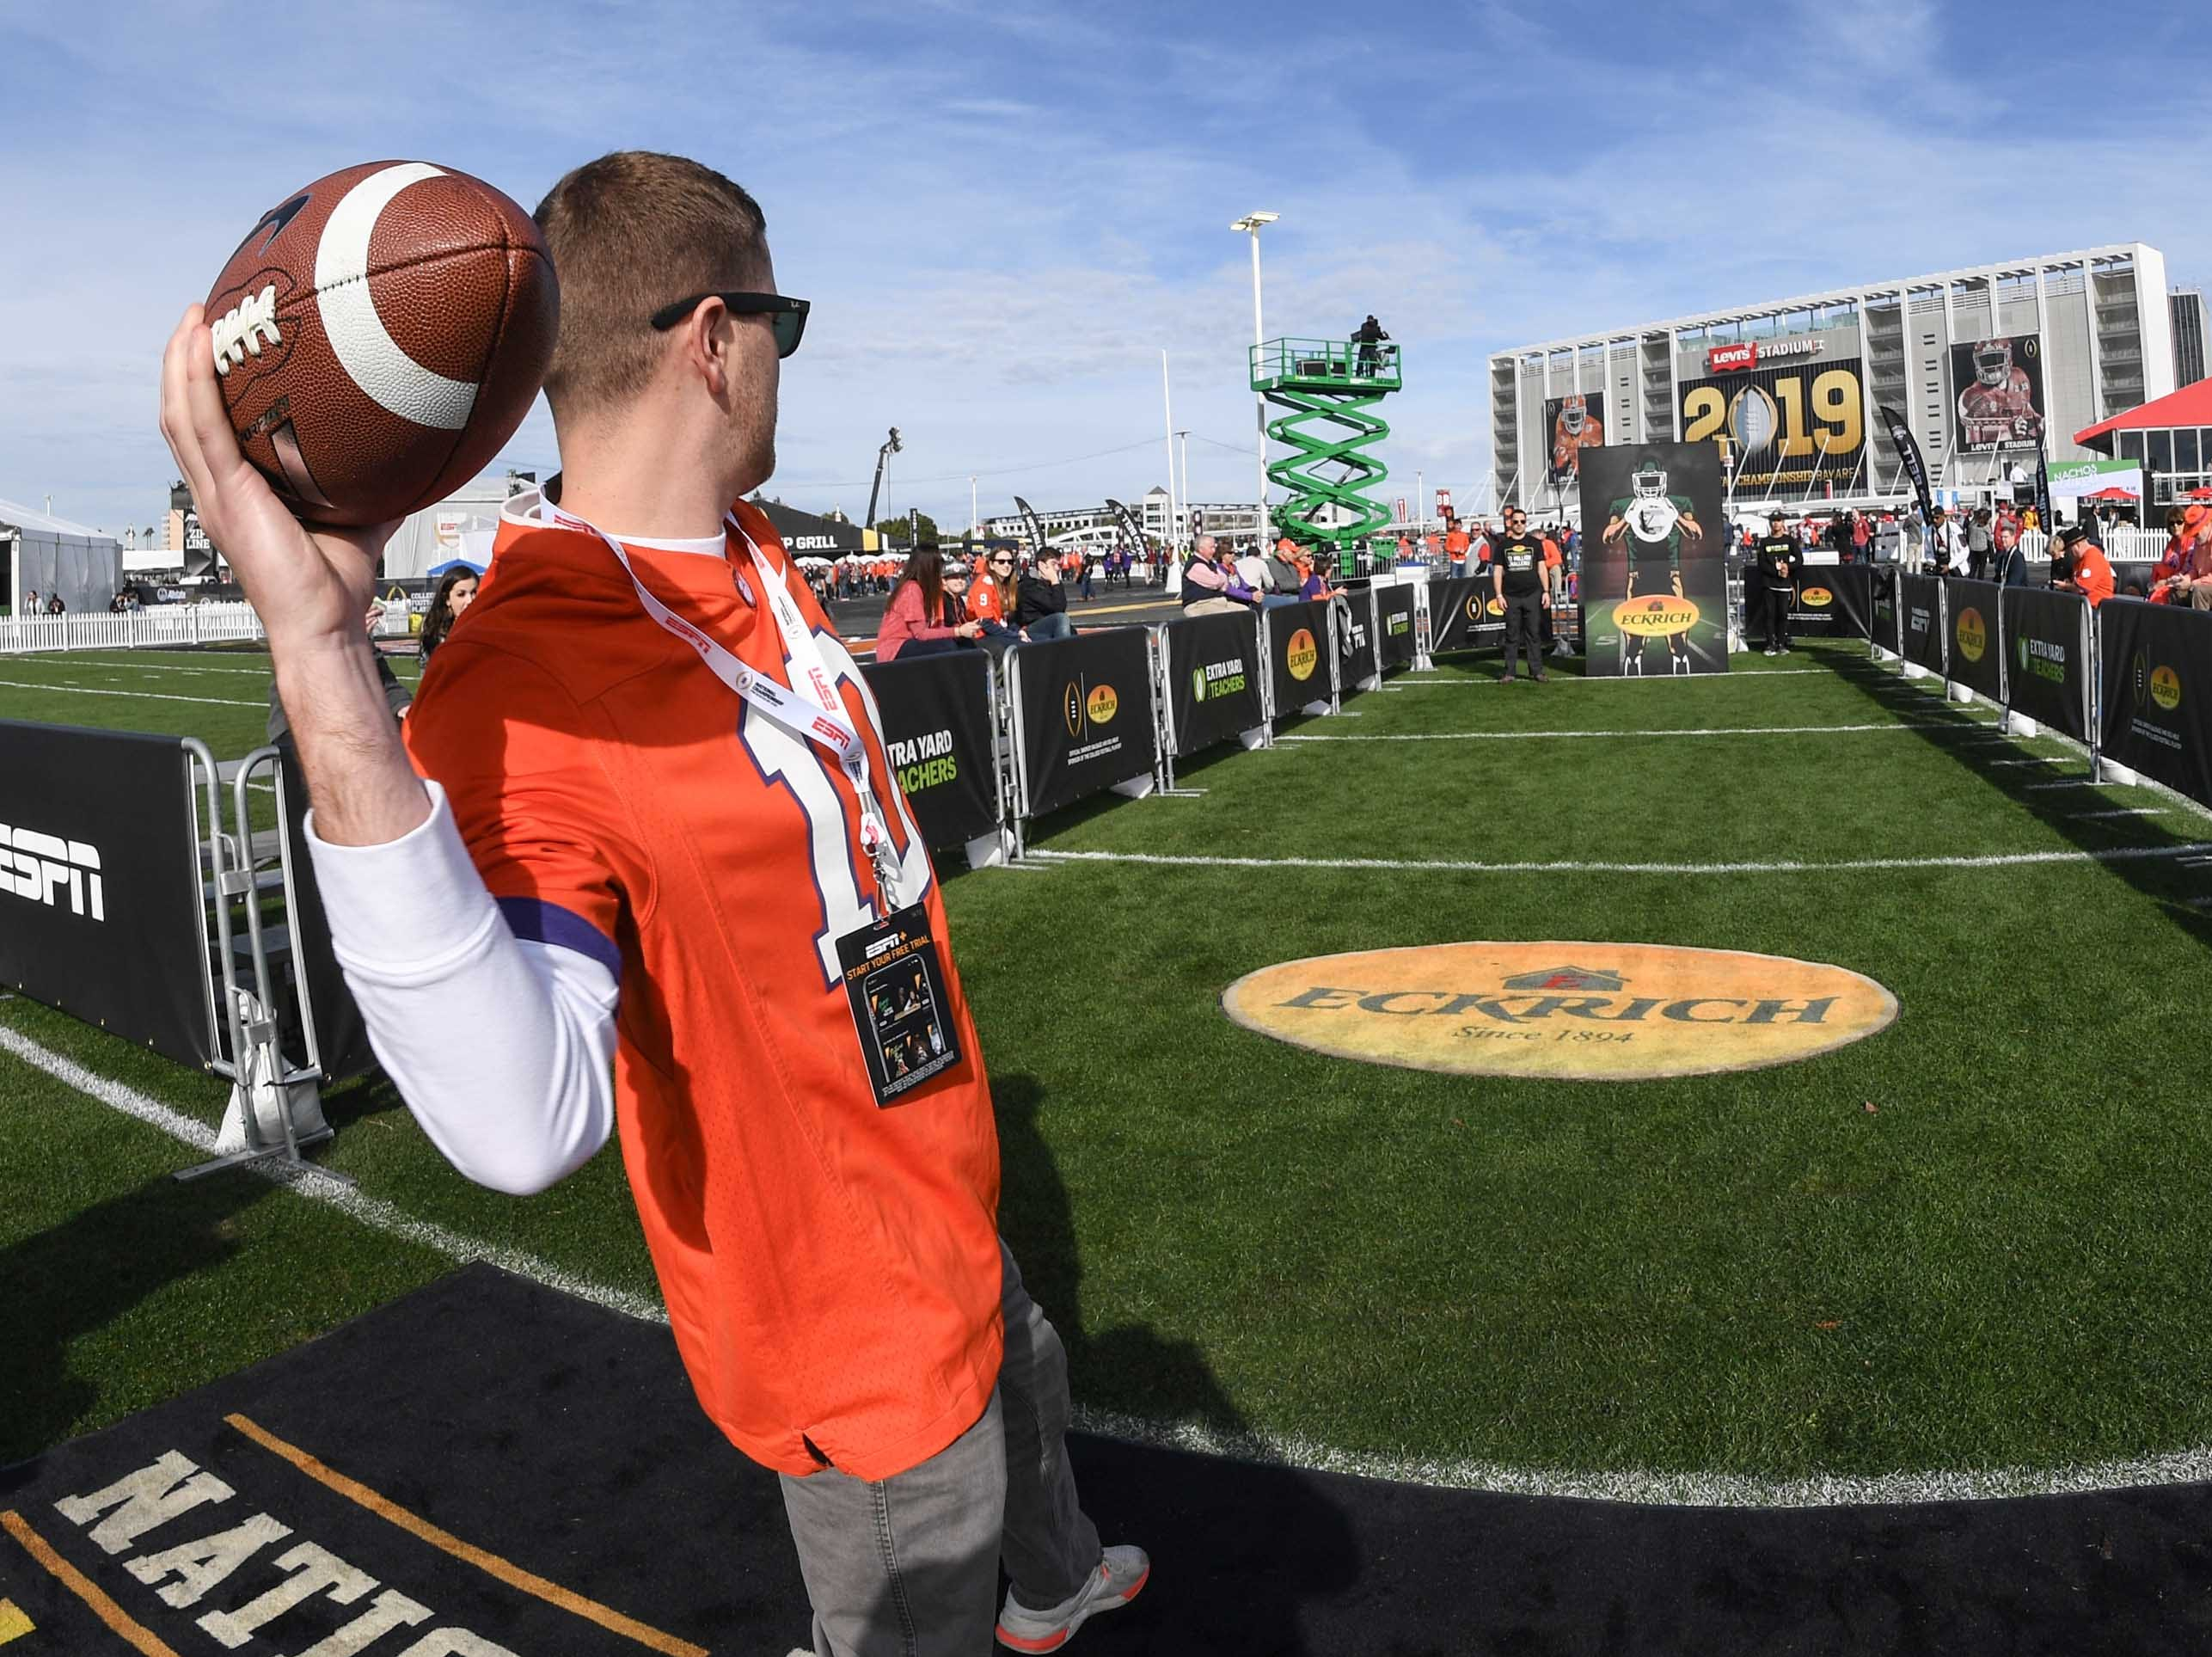 Clemson fan Kyle Clifford of Atlanta tosses a football at the College Football Championship Playoff Tailgate outside Levi's Stadium in Santa Clara, California Monday, January 7, 2019.